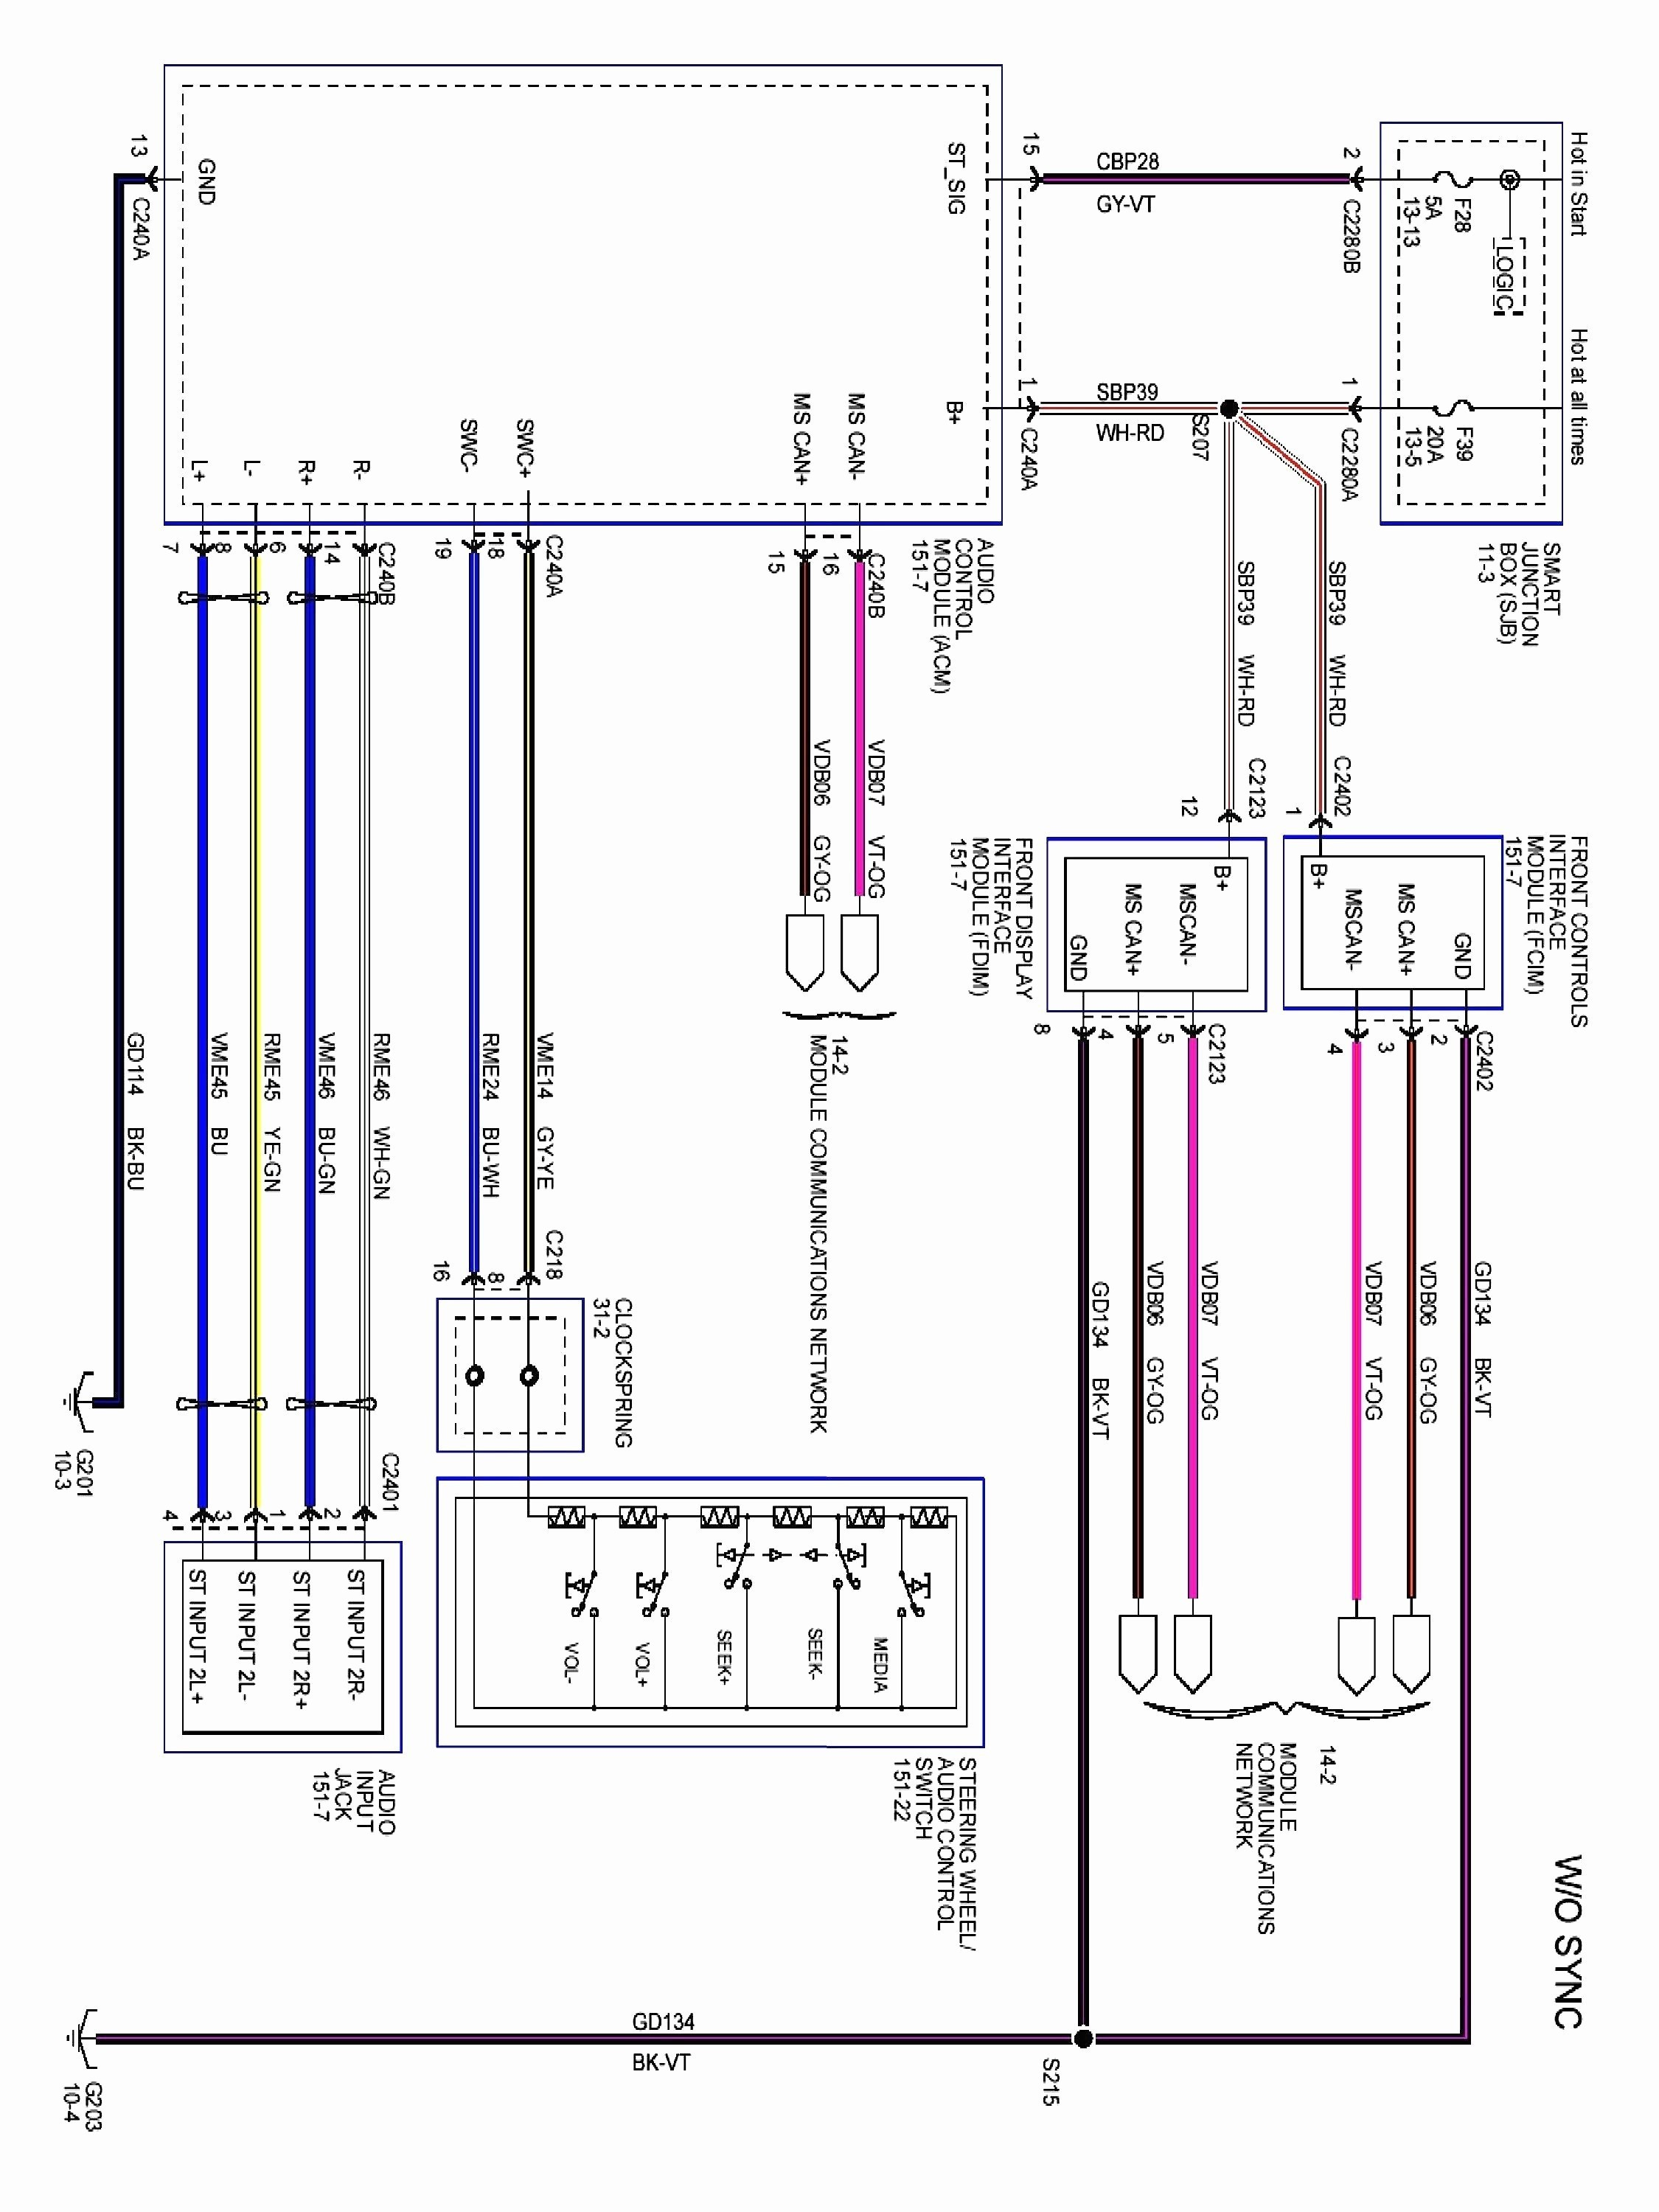 Diagrams Of Car Engines Wire Harness Bmw X5 35d Of Diagrams Of Car Engines